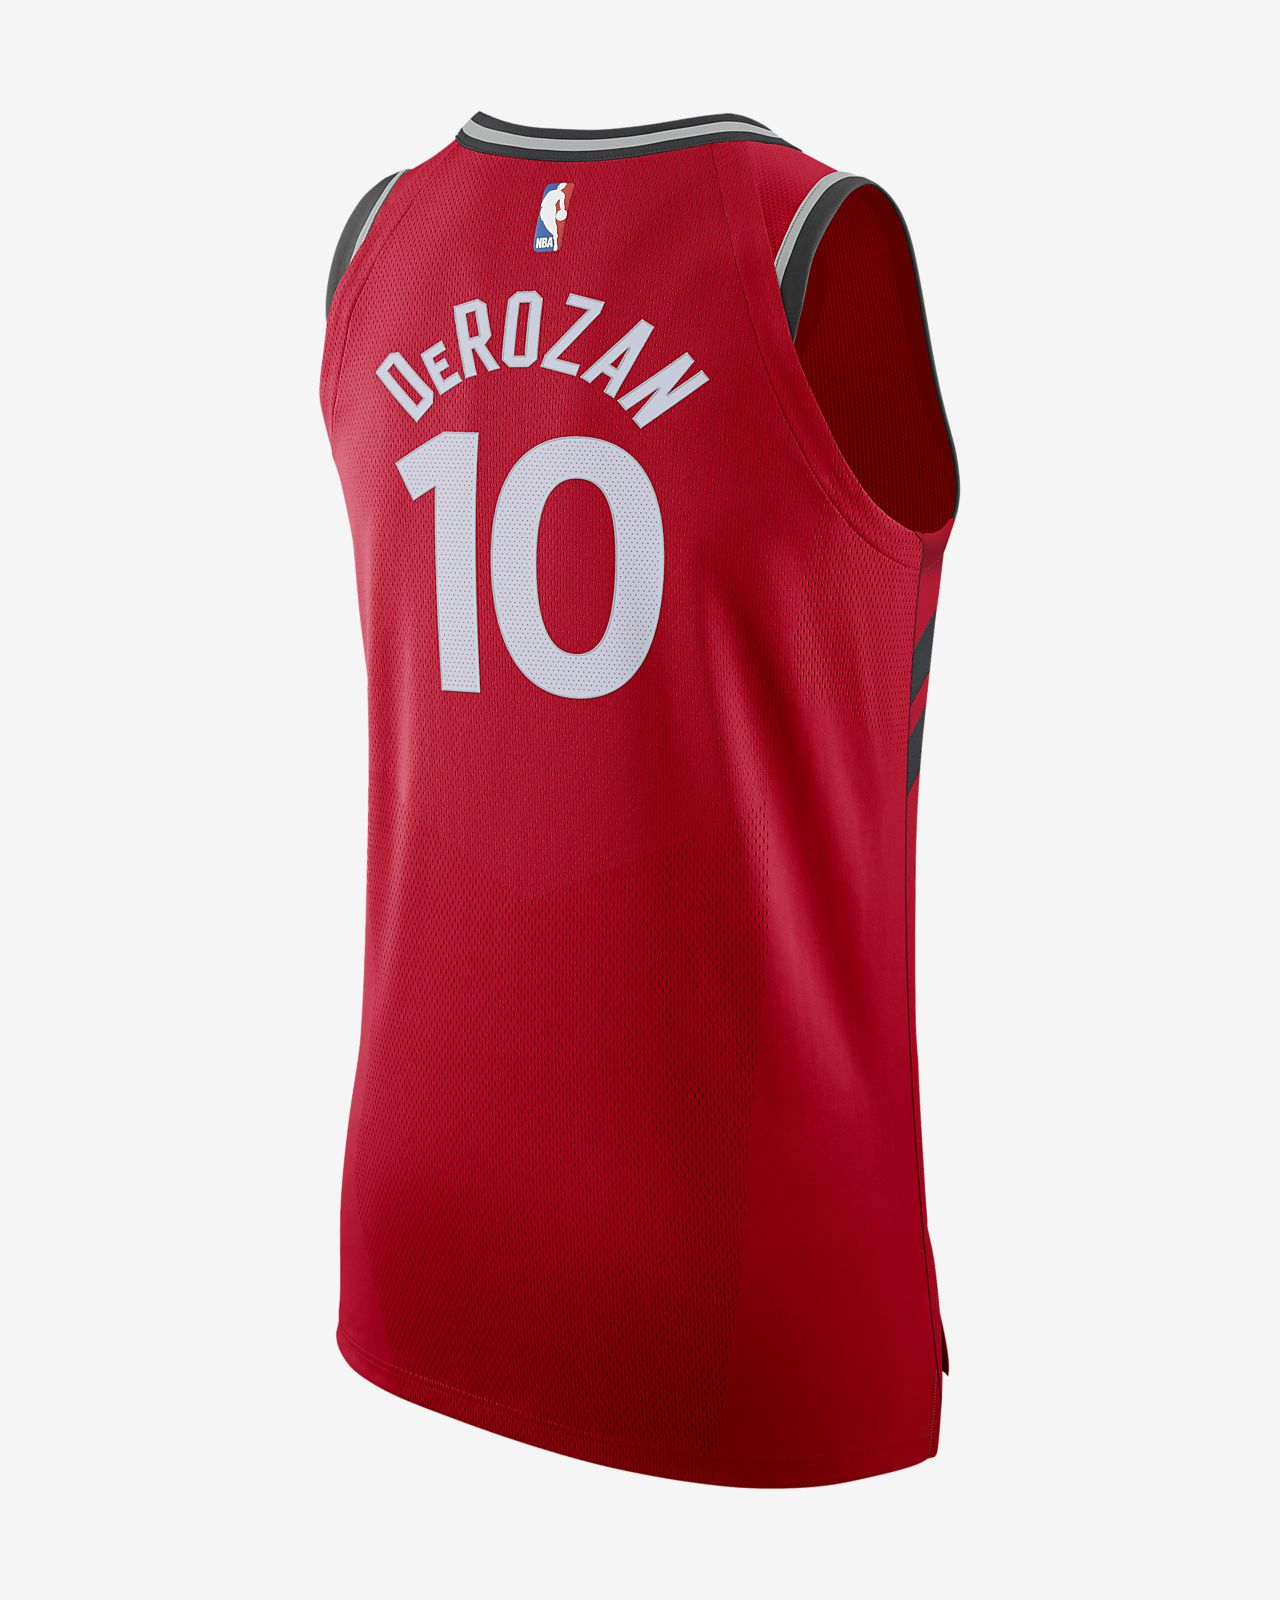 uk availability 61e3b dbec3 Demar Derozan Icon Edition Authentic (Toronto Raptors) Men's Nike NBA  Connected Jersey